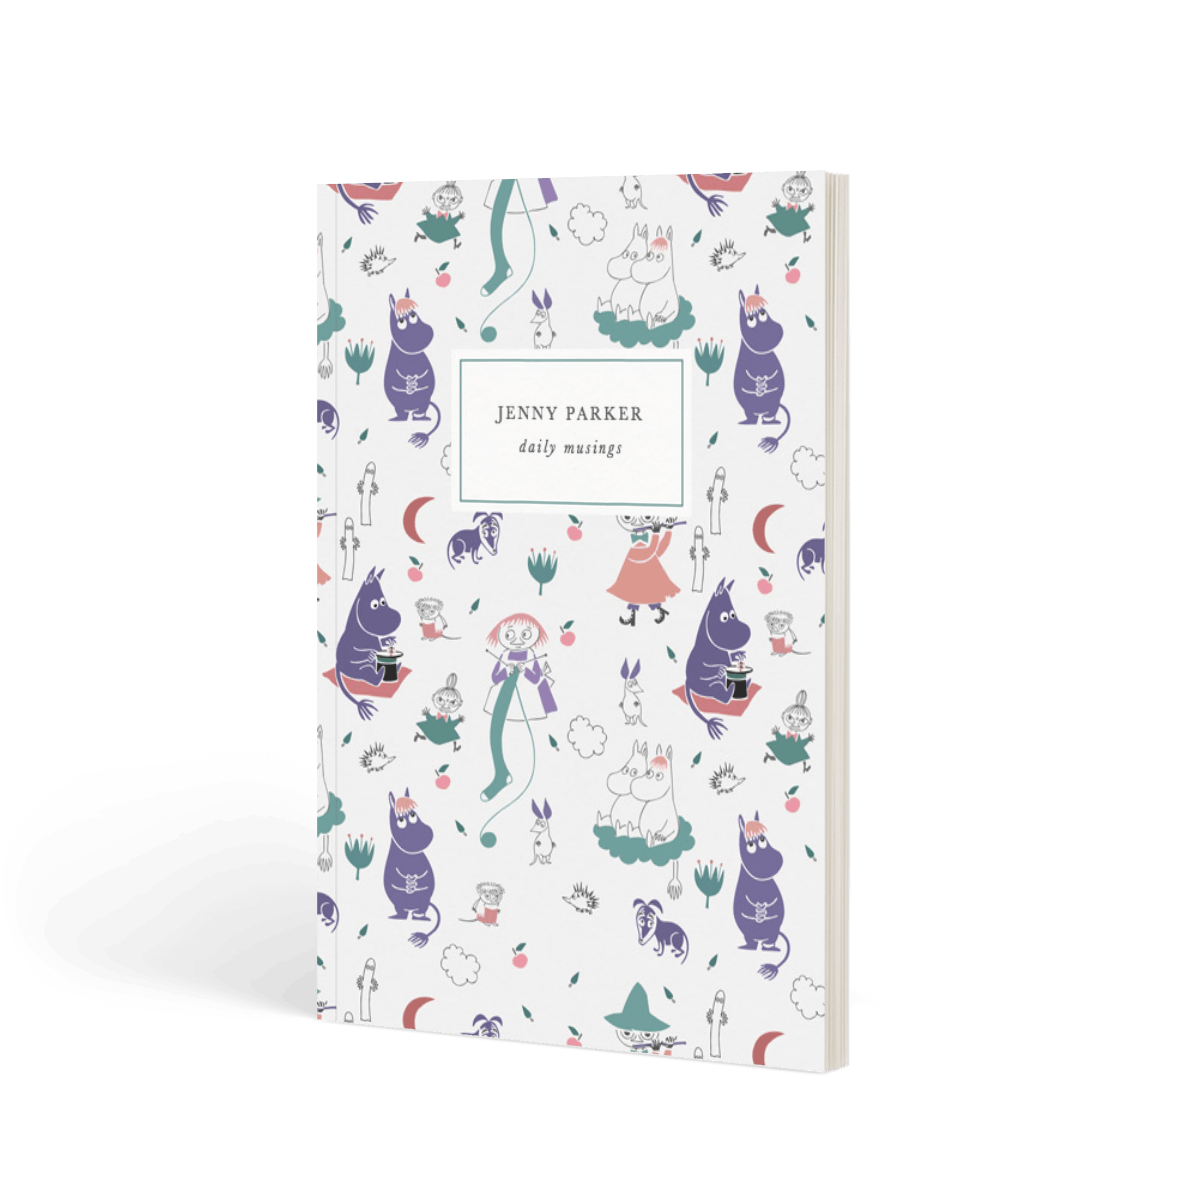 Https%3a%2f%2fwww.papier.com%2fproduct image%2f22846%2f6%2fpurple moomins 5738 front 1495186541.png?ixlib=rb 1.1